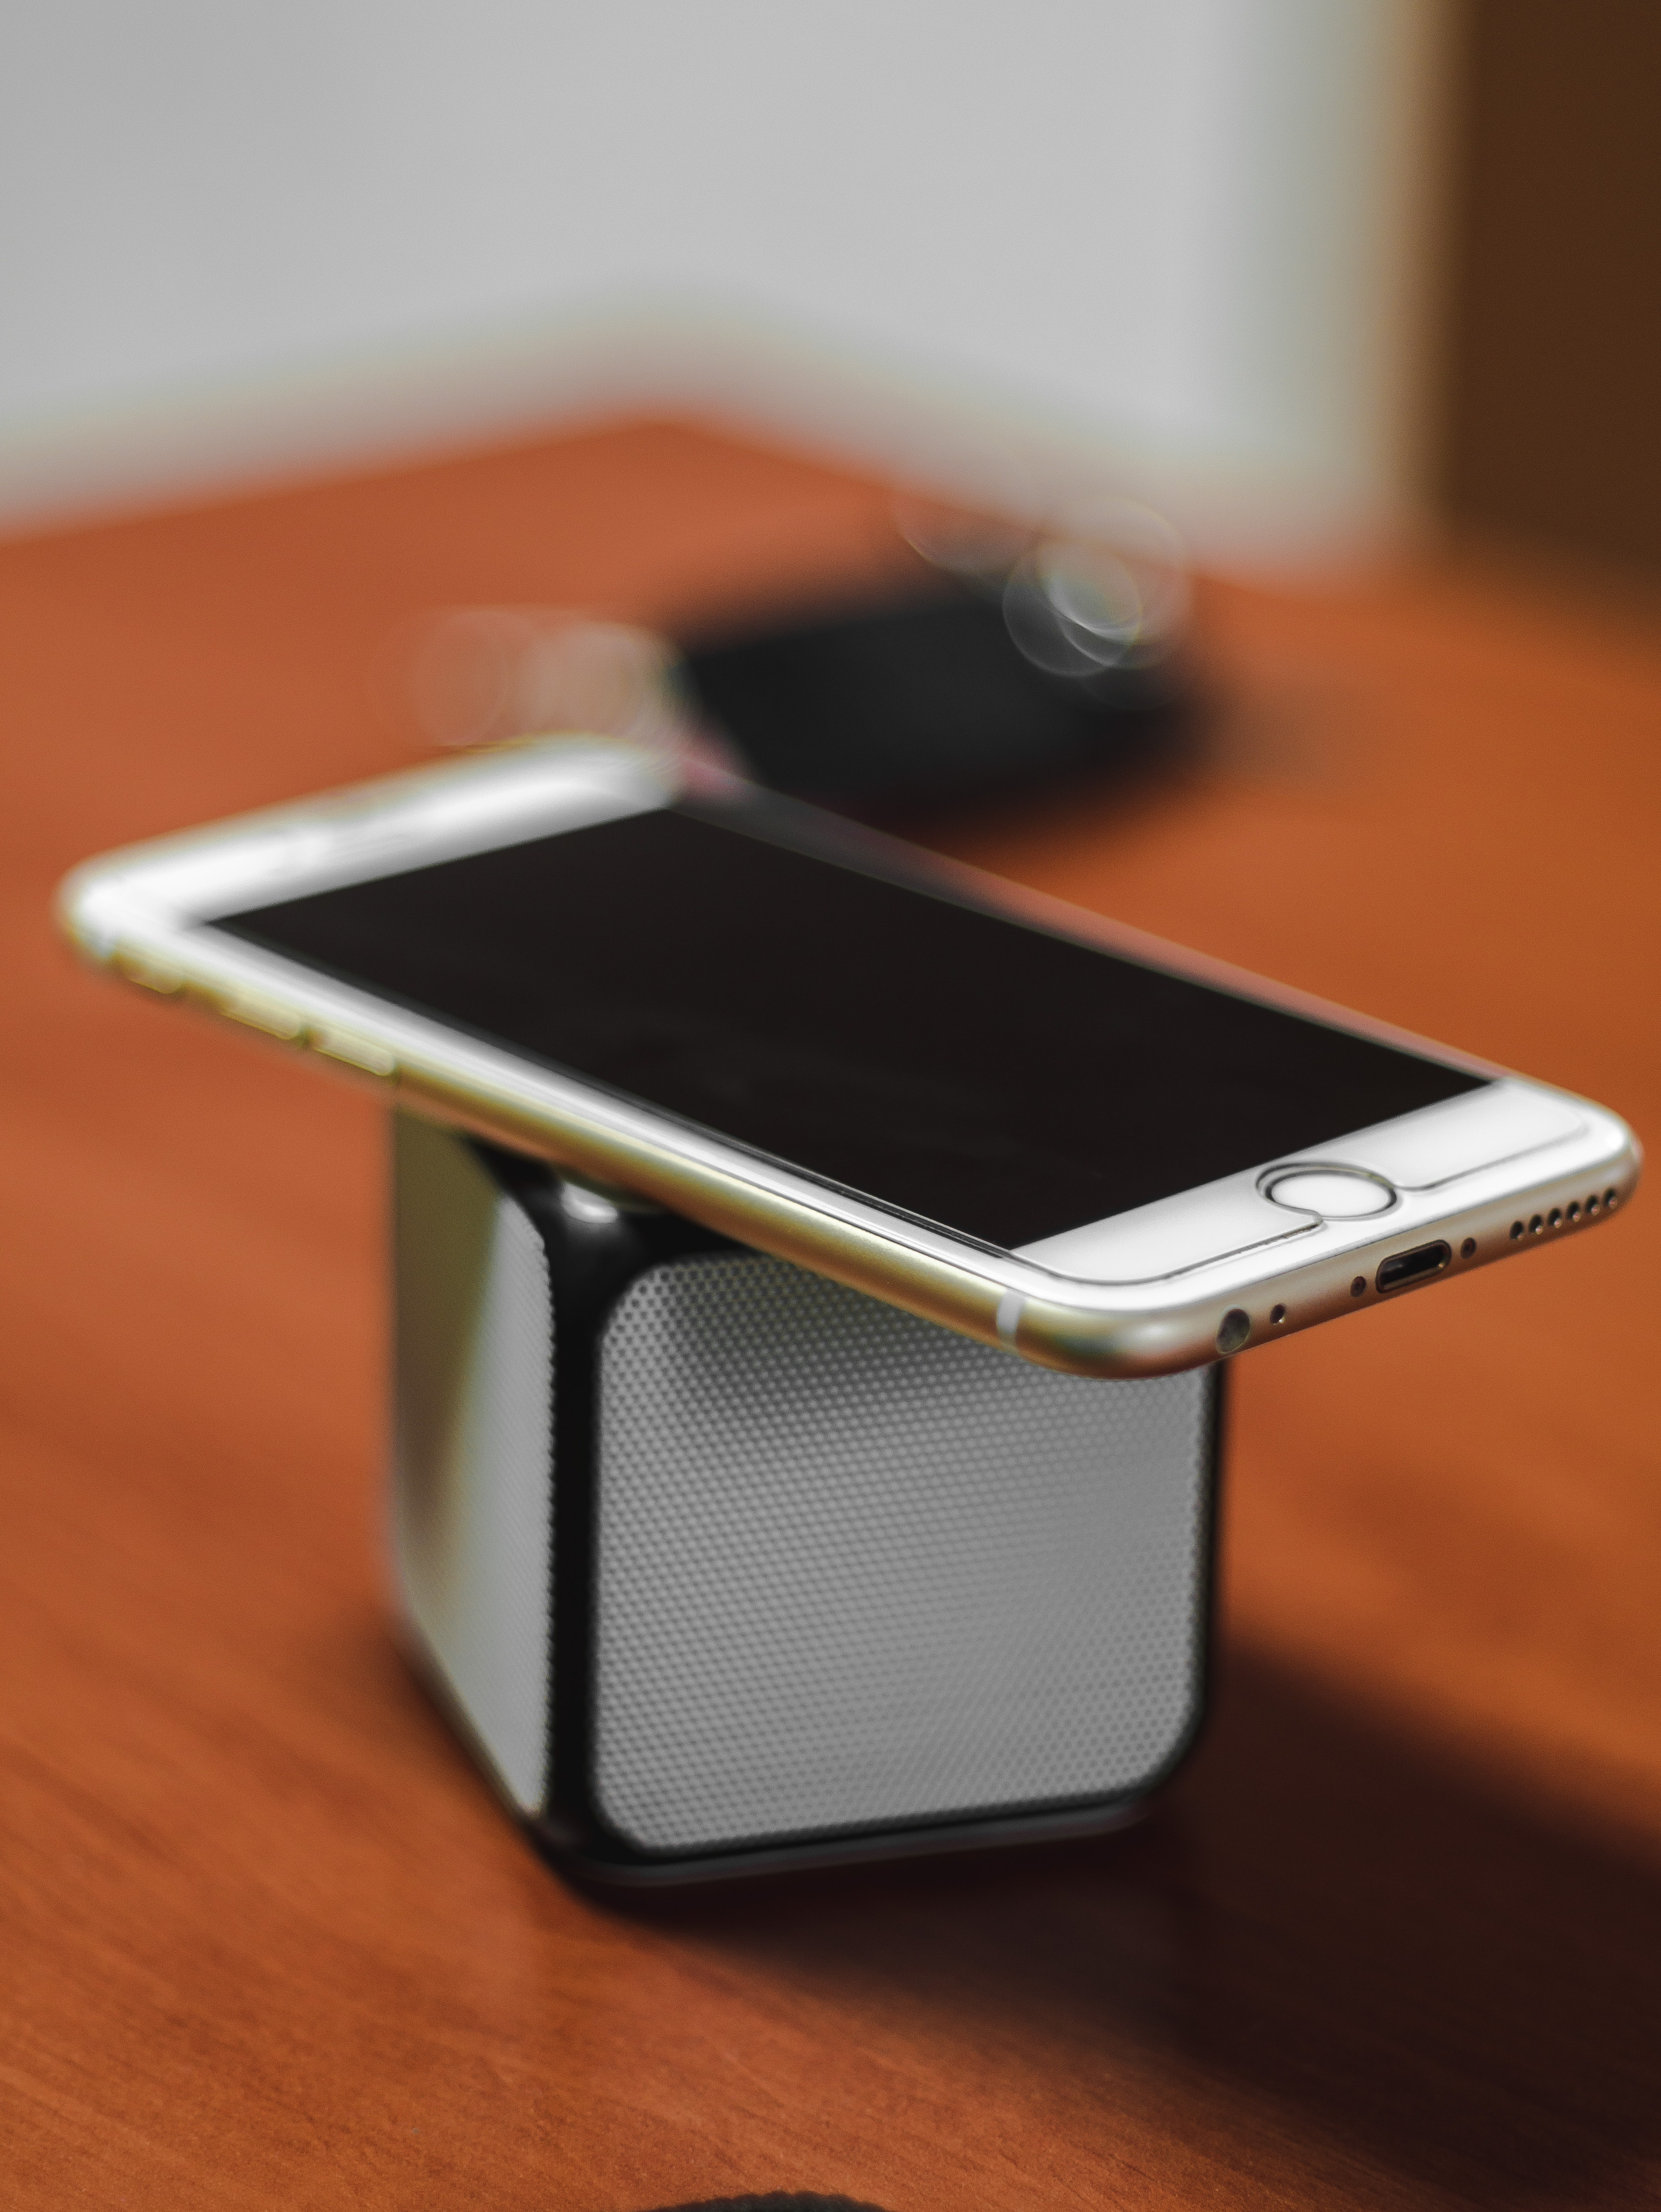 gold iPhone 6 on top of Bluetooth portable speaker